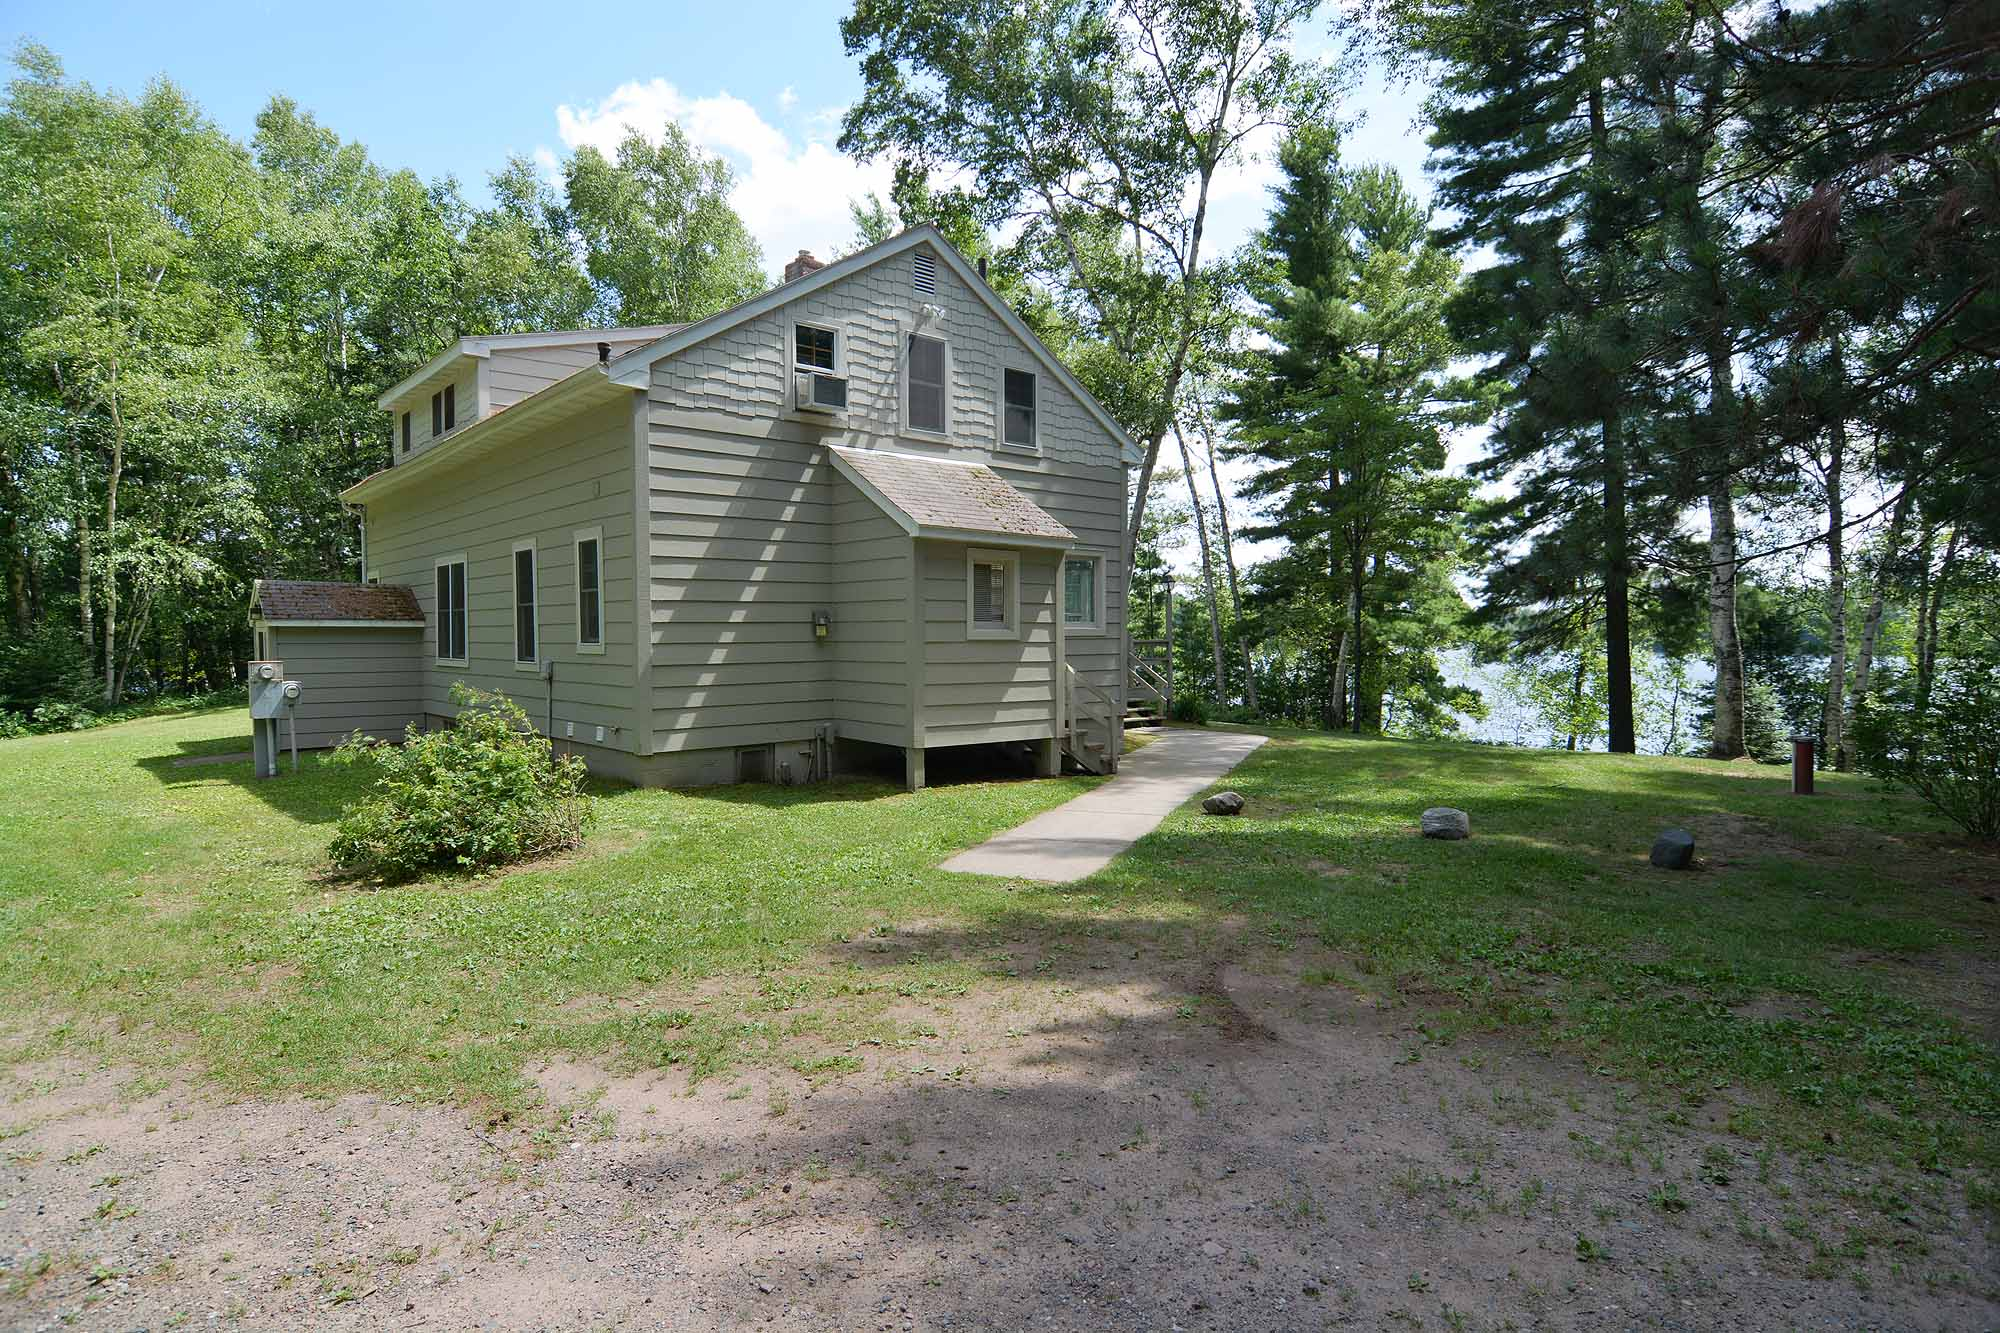 vrbo cabins beautiful balsam wi quottooquot cabin lake blake on wisconsin of rentals too big winter